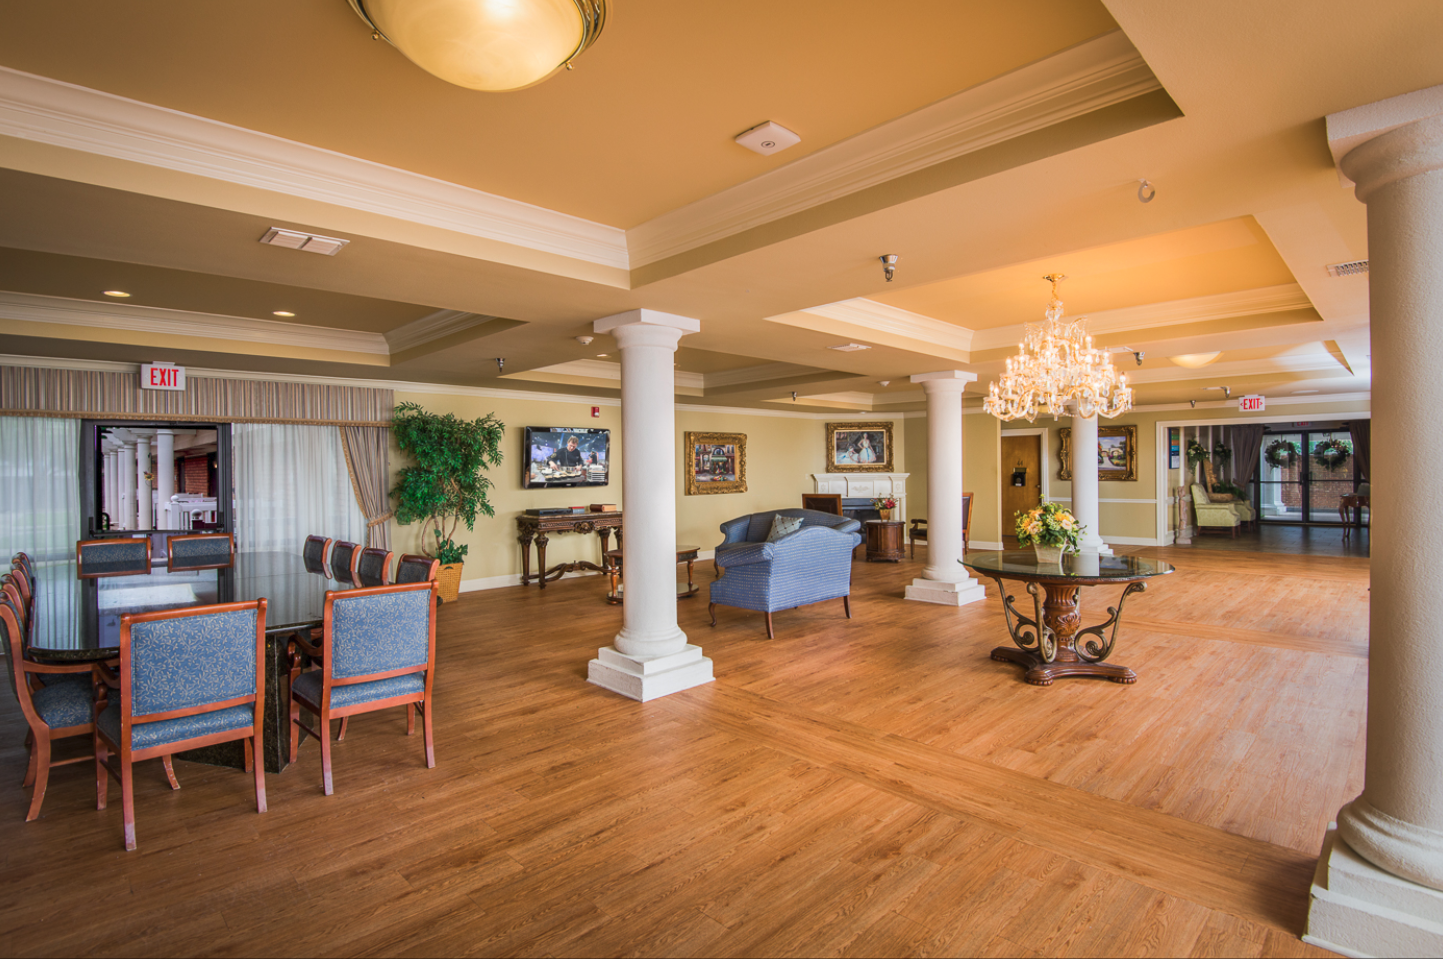 The Gables at Spring Lake Assisted Living [Senior Care Centers] image 4